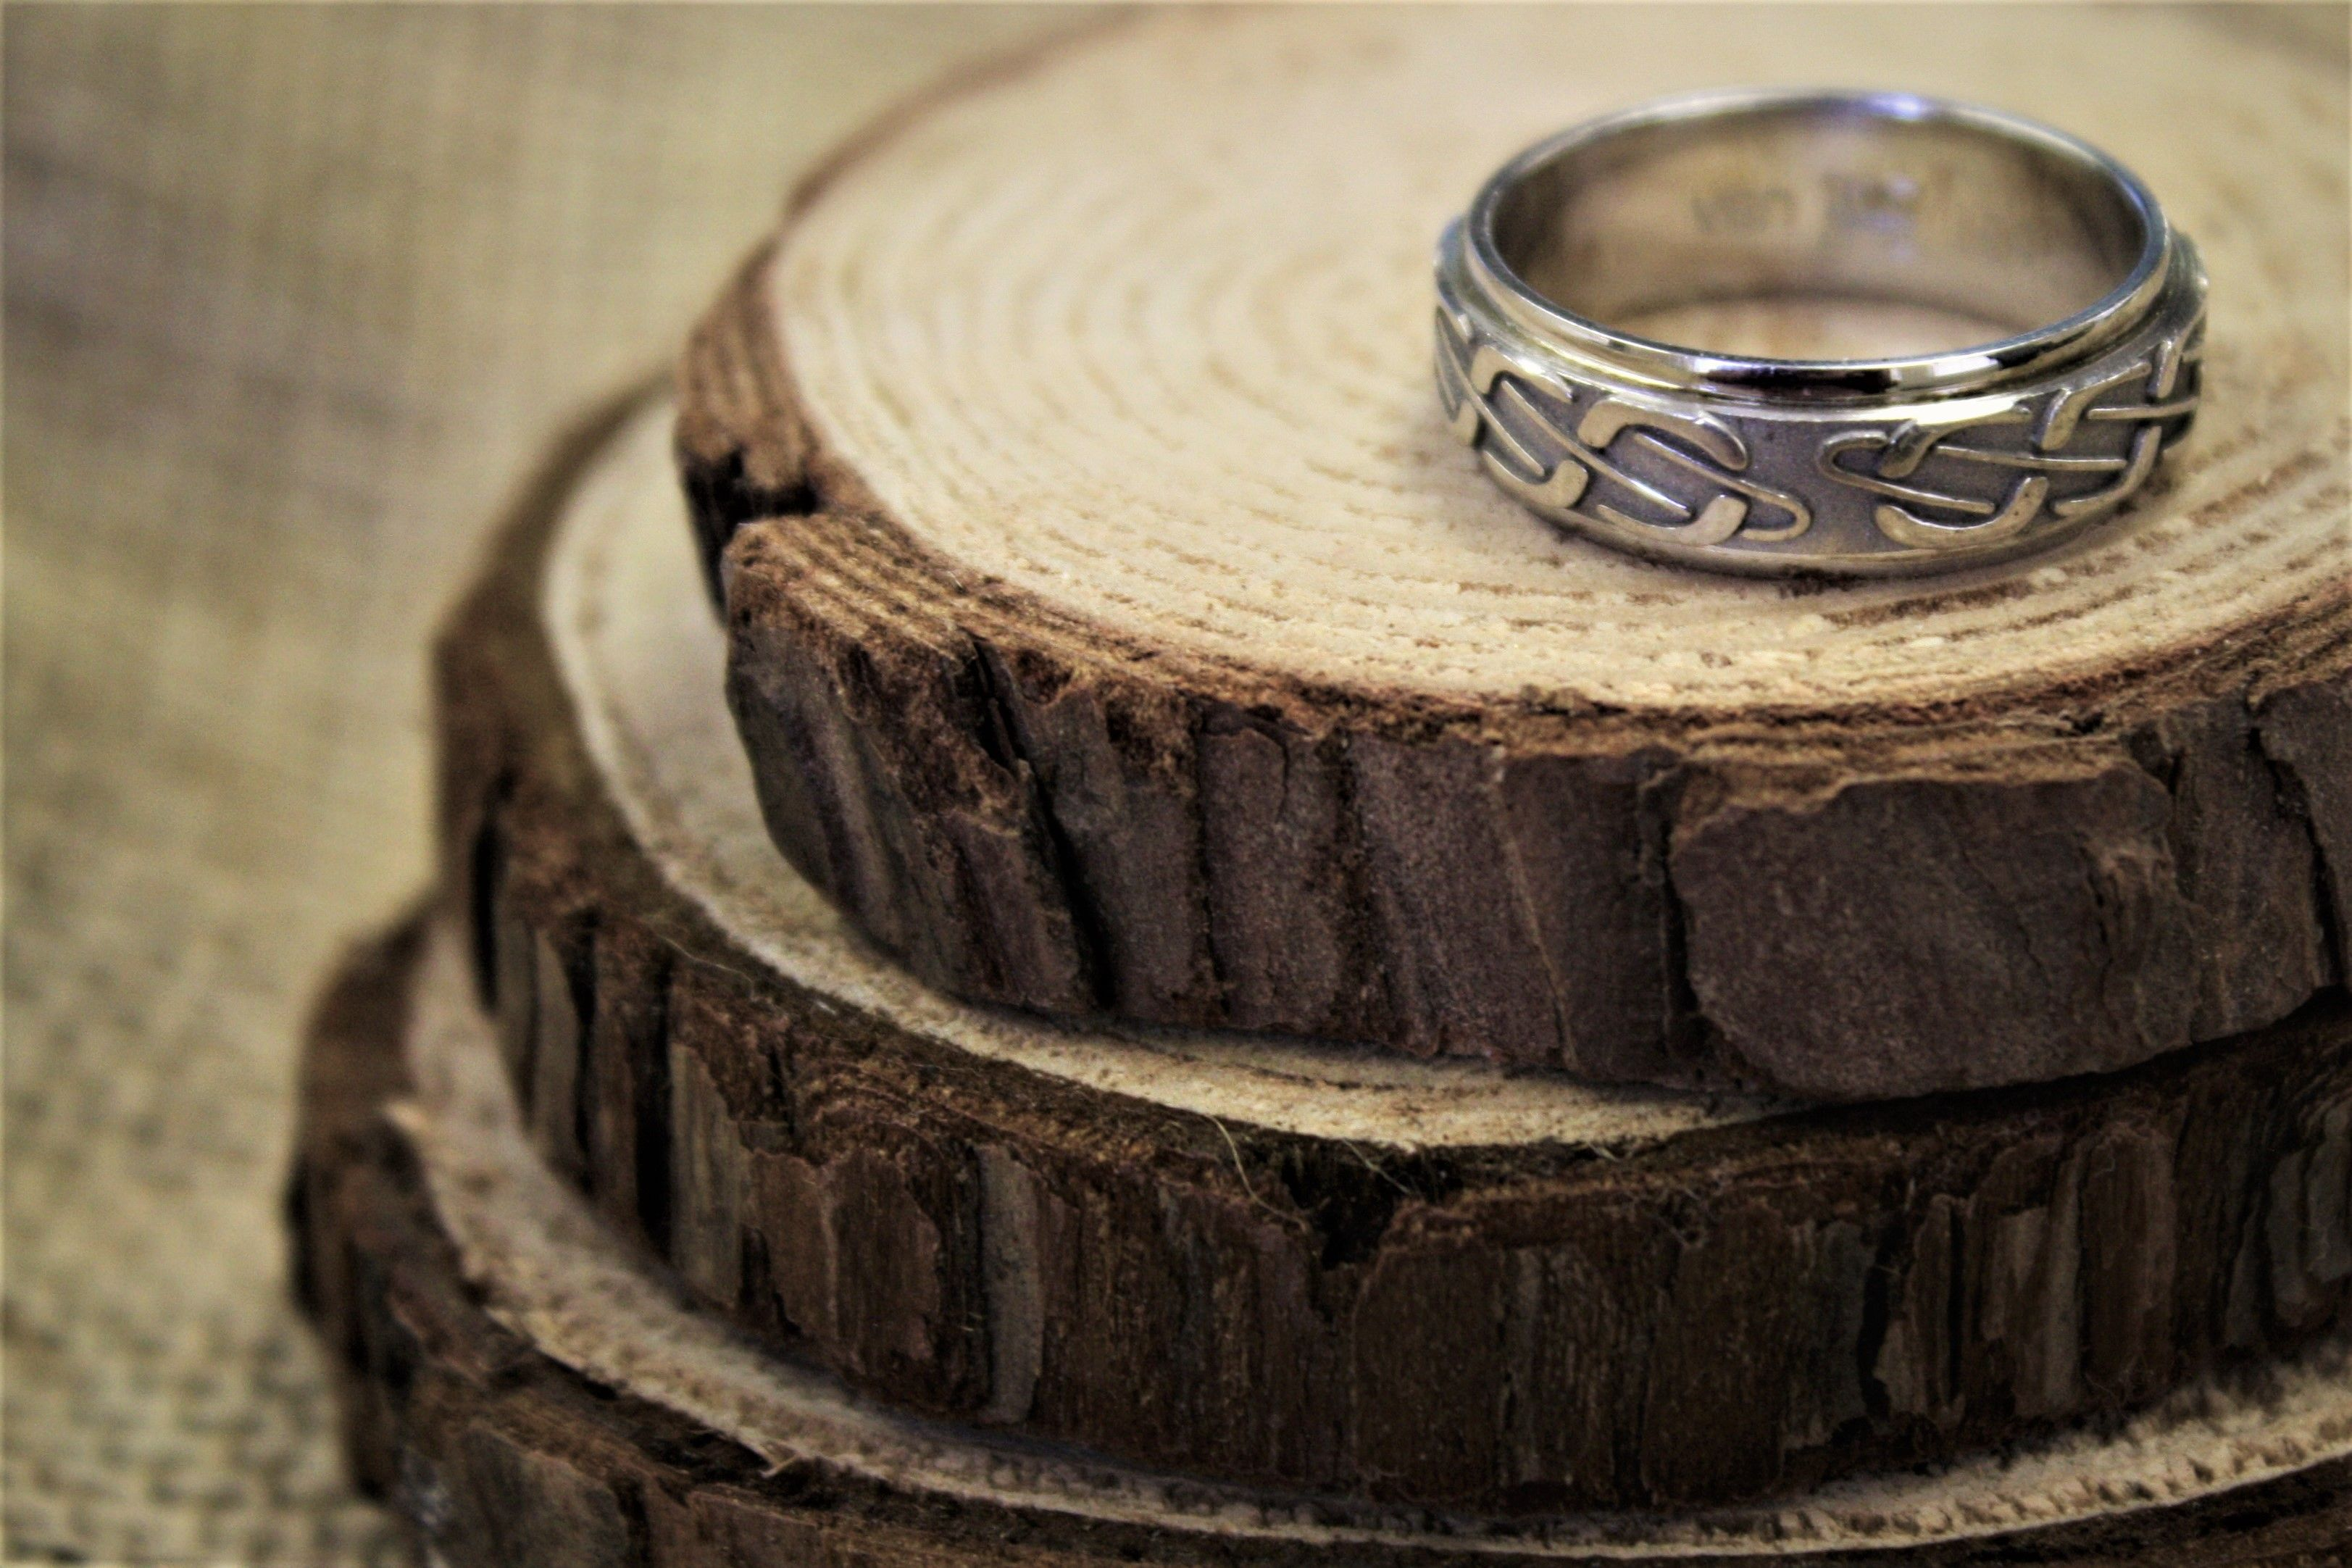 Finely Detailed And Intricately Designed This Wedding Ring Feature Gracefully Interwov Mens Wedding Bands Yellow Gold Diamond Wedding Band Custom Wedding Band